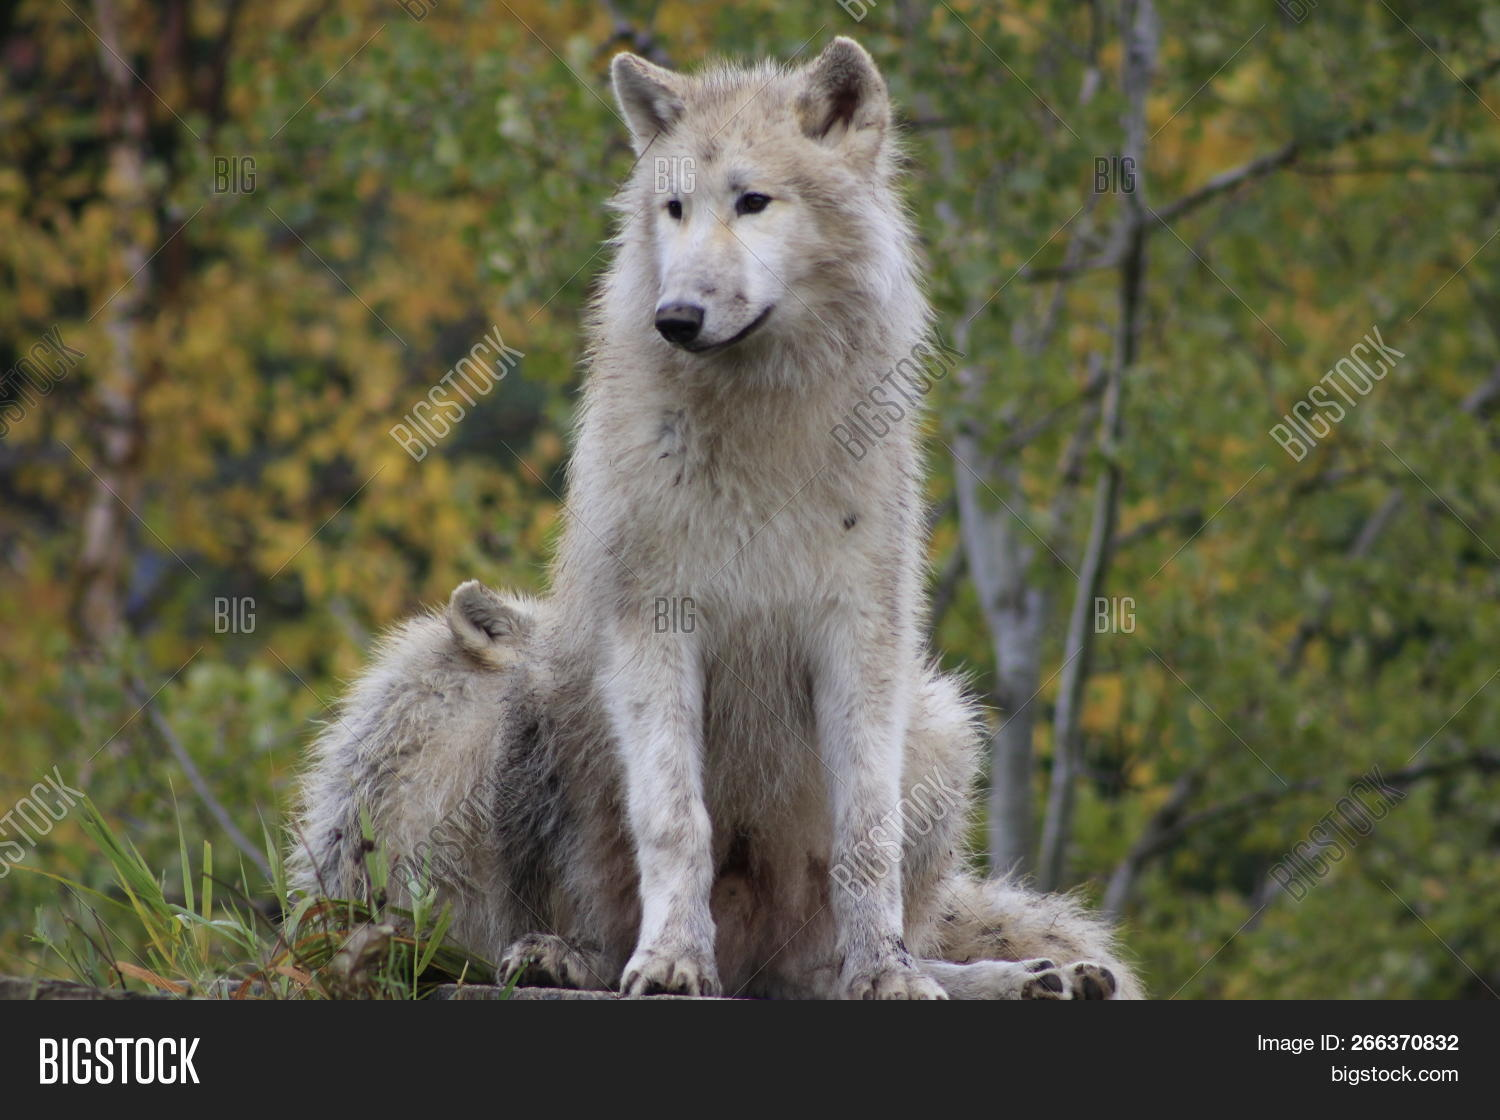 adult,alpha,animal,archipelago,arctic,beautiful,canada,canine,carnassials,carnivore,cold,controlled,danger,distinct,dog,endangered,environment,eye,face,fall,fierce,forest,fur,furry,gray,head,hunt,hybridization,isolated,male,mammal,natural,nature,polar,predator,savage,seasons,skull,snow,soft,special,stare,subspecies,white,wild,wildlife,wolf,wolves,woods